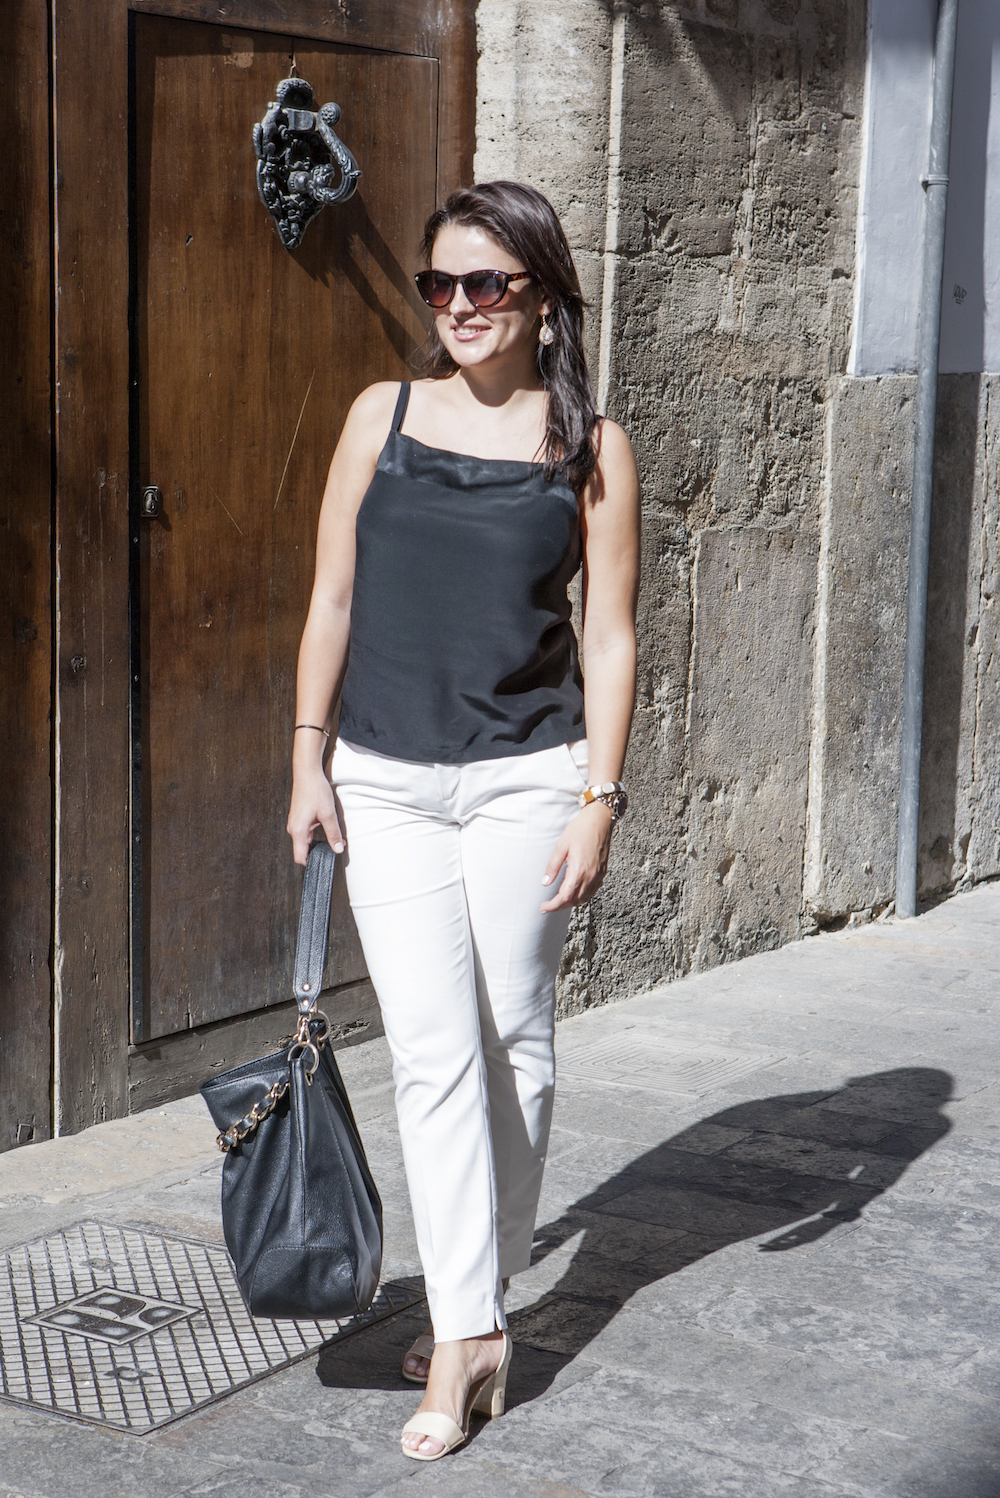 f3dce685102 woman wearing white pants and black top going to the office  office wear  for summer